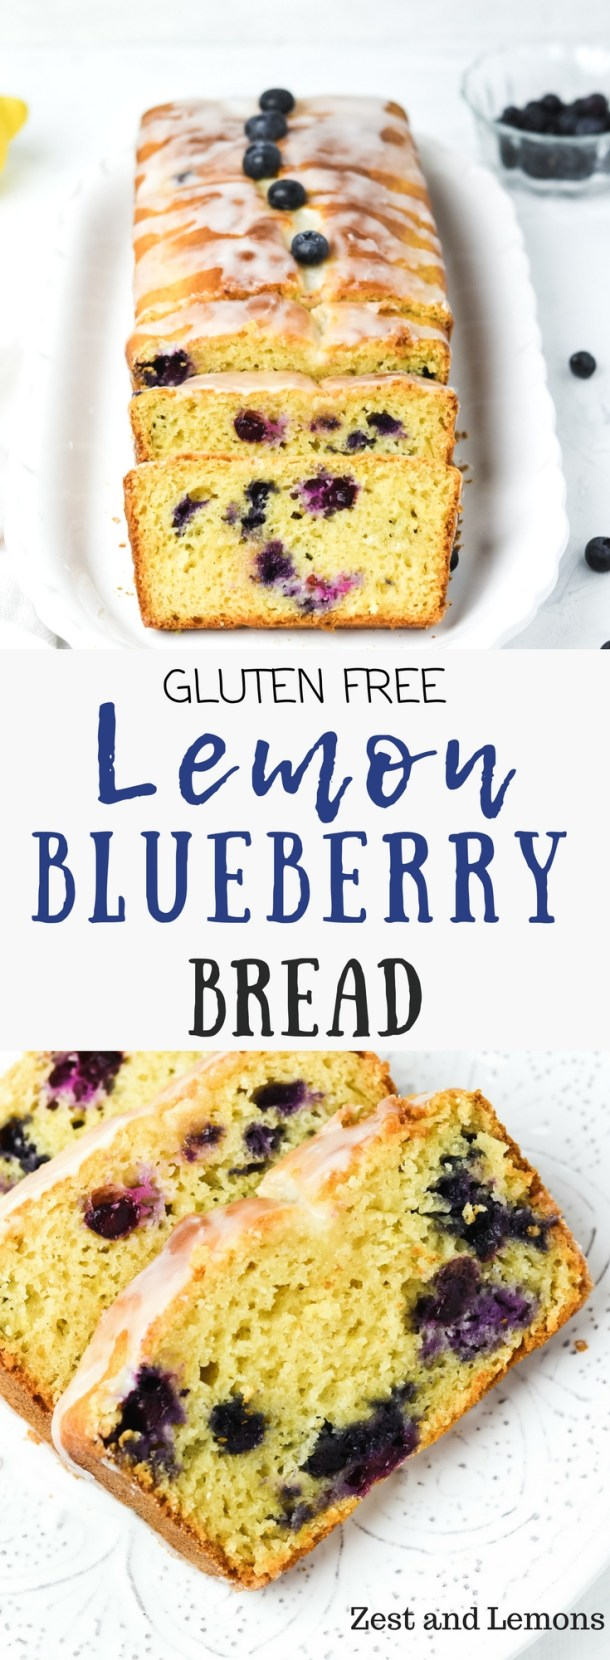 Gluten free lemon blueberry bread, sweet tangy and bursting with fresh blueberries! - Zest and Lemons #glutenfree #quickbread #glutenfreedessert